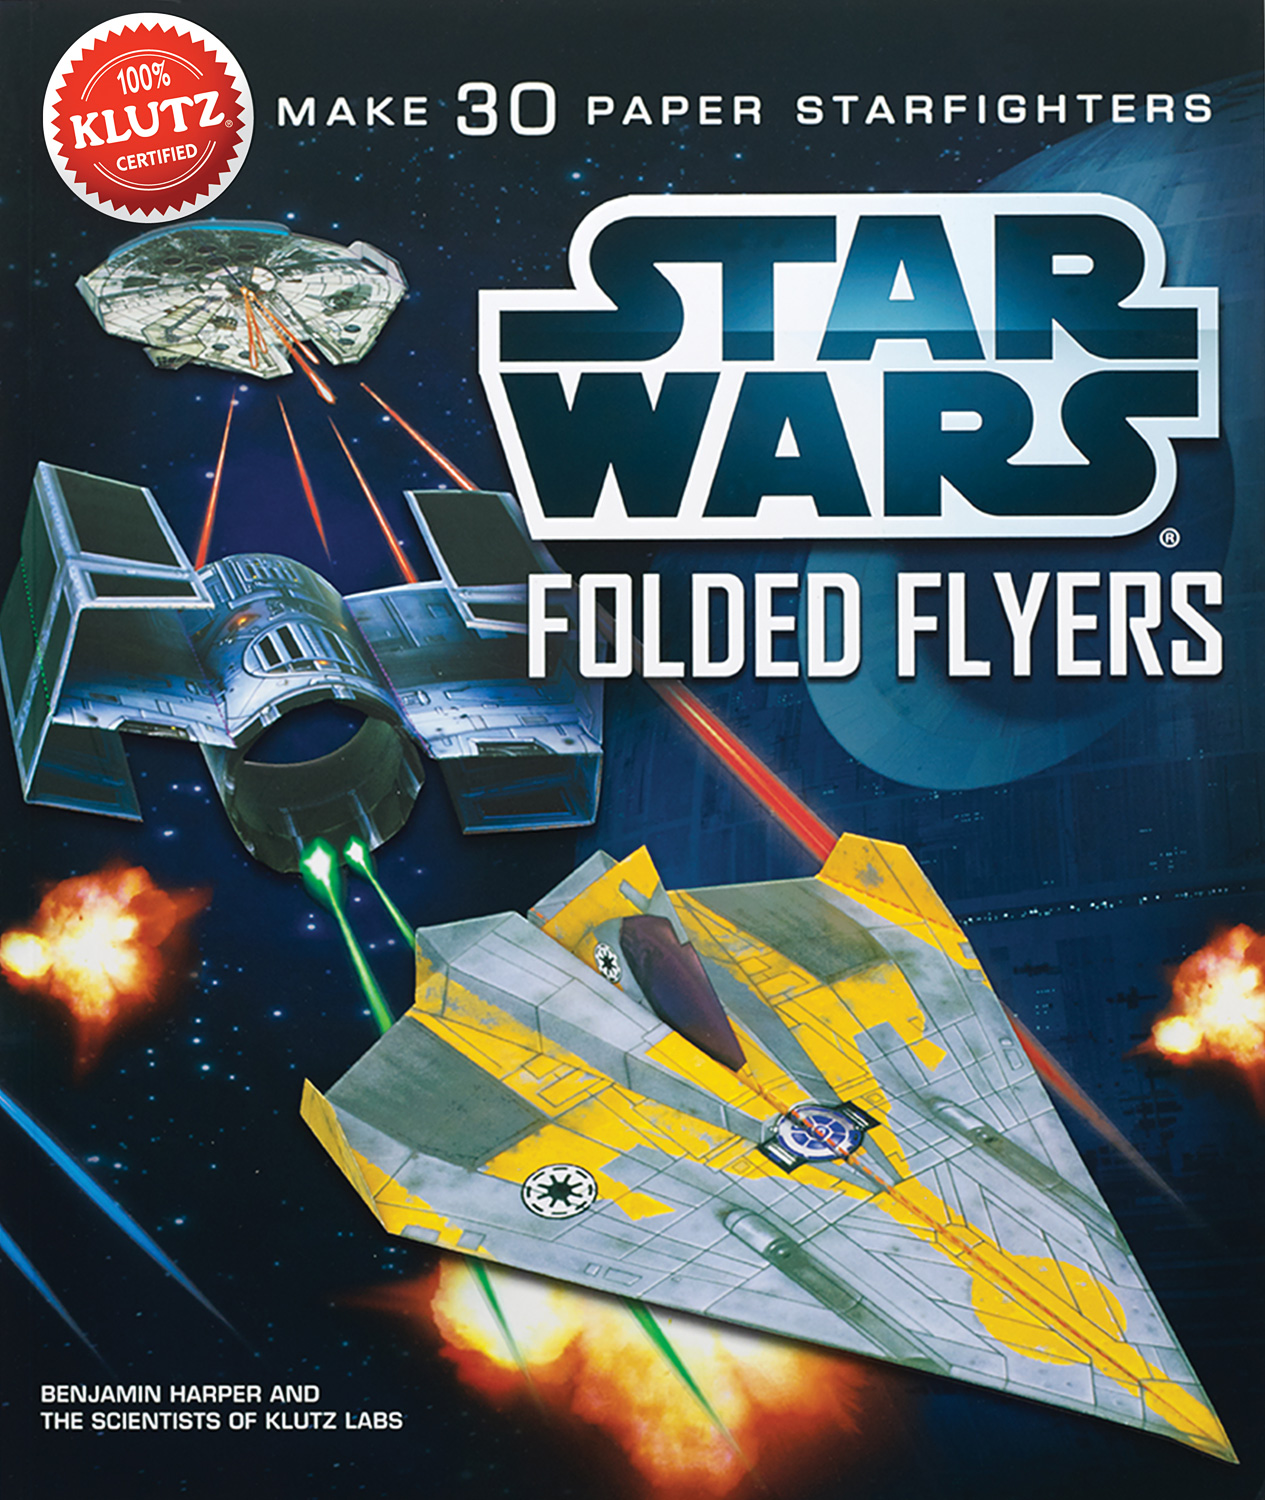 STAR WARS® FOLDED FLYERS